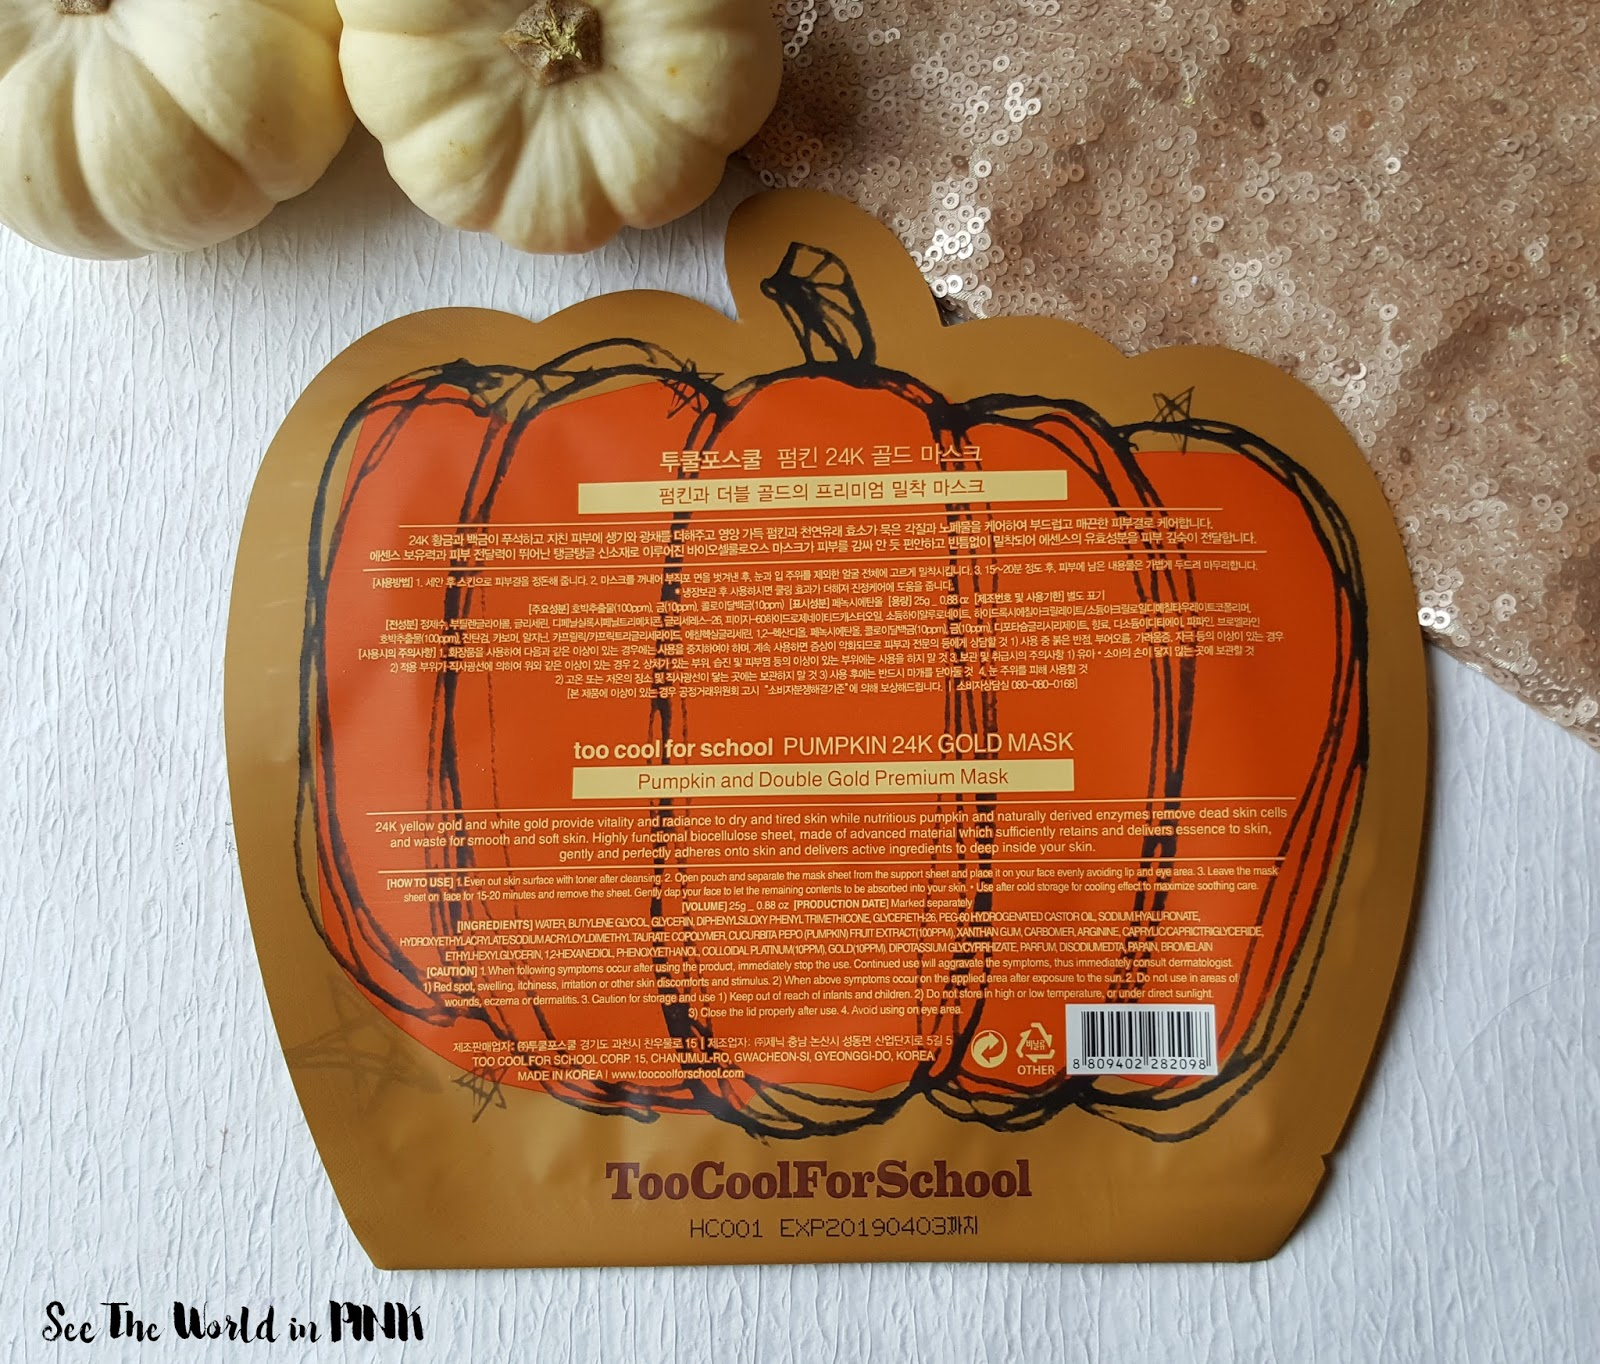 Mask Thursday - Too Cool For School Pumpkin 24k Gold Sheet Mask Review